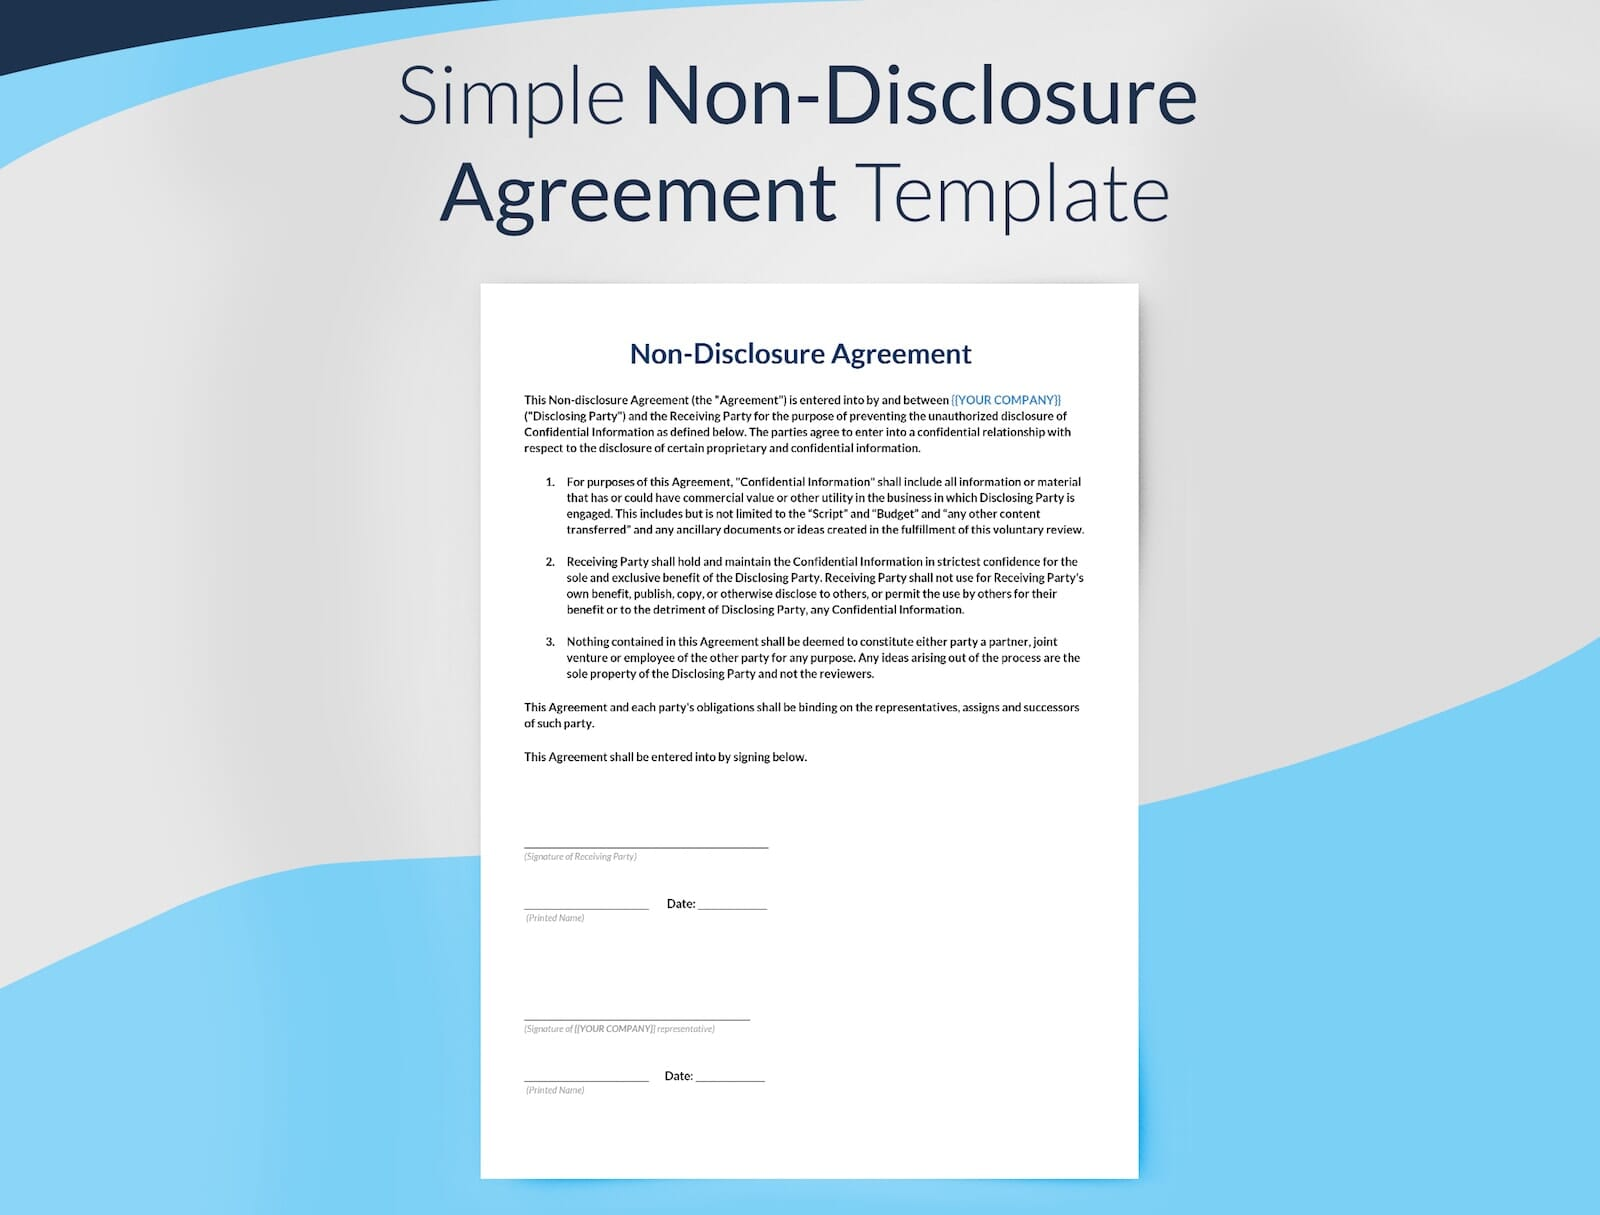 Preview of Simple Non-Disclosure Agreement Template